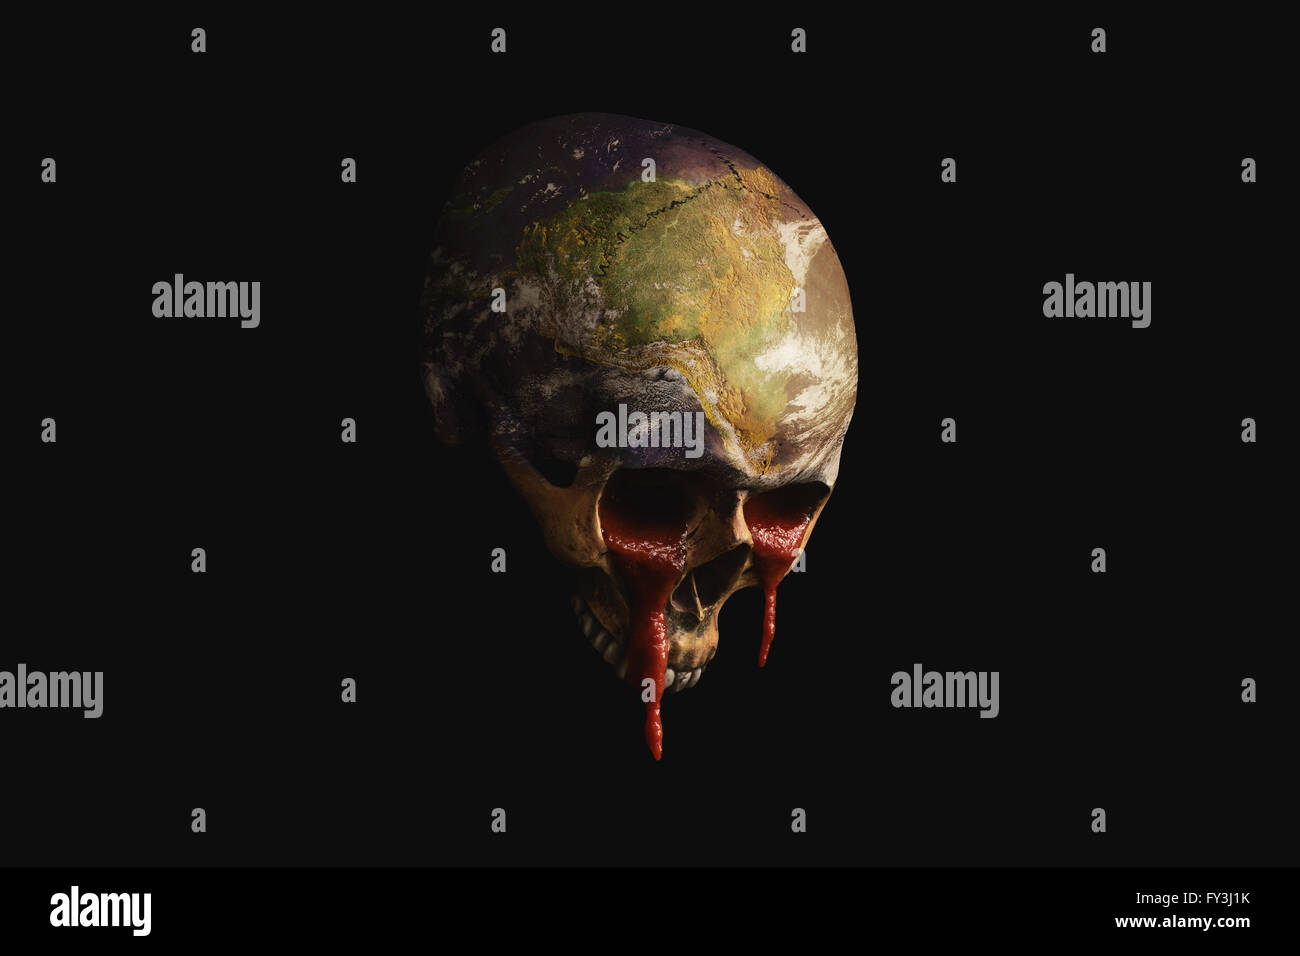 dying Earth running blood out of the nose - Stock Image